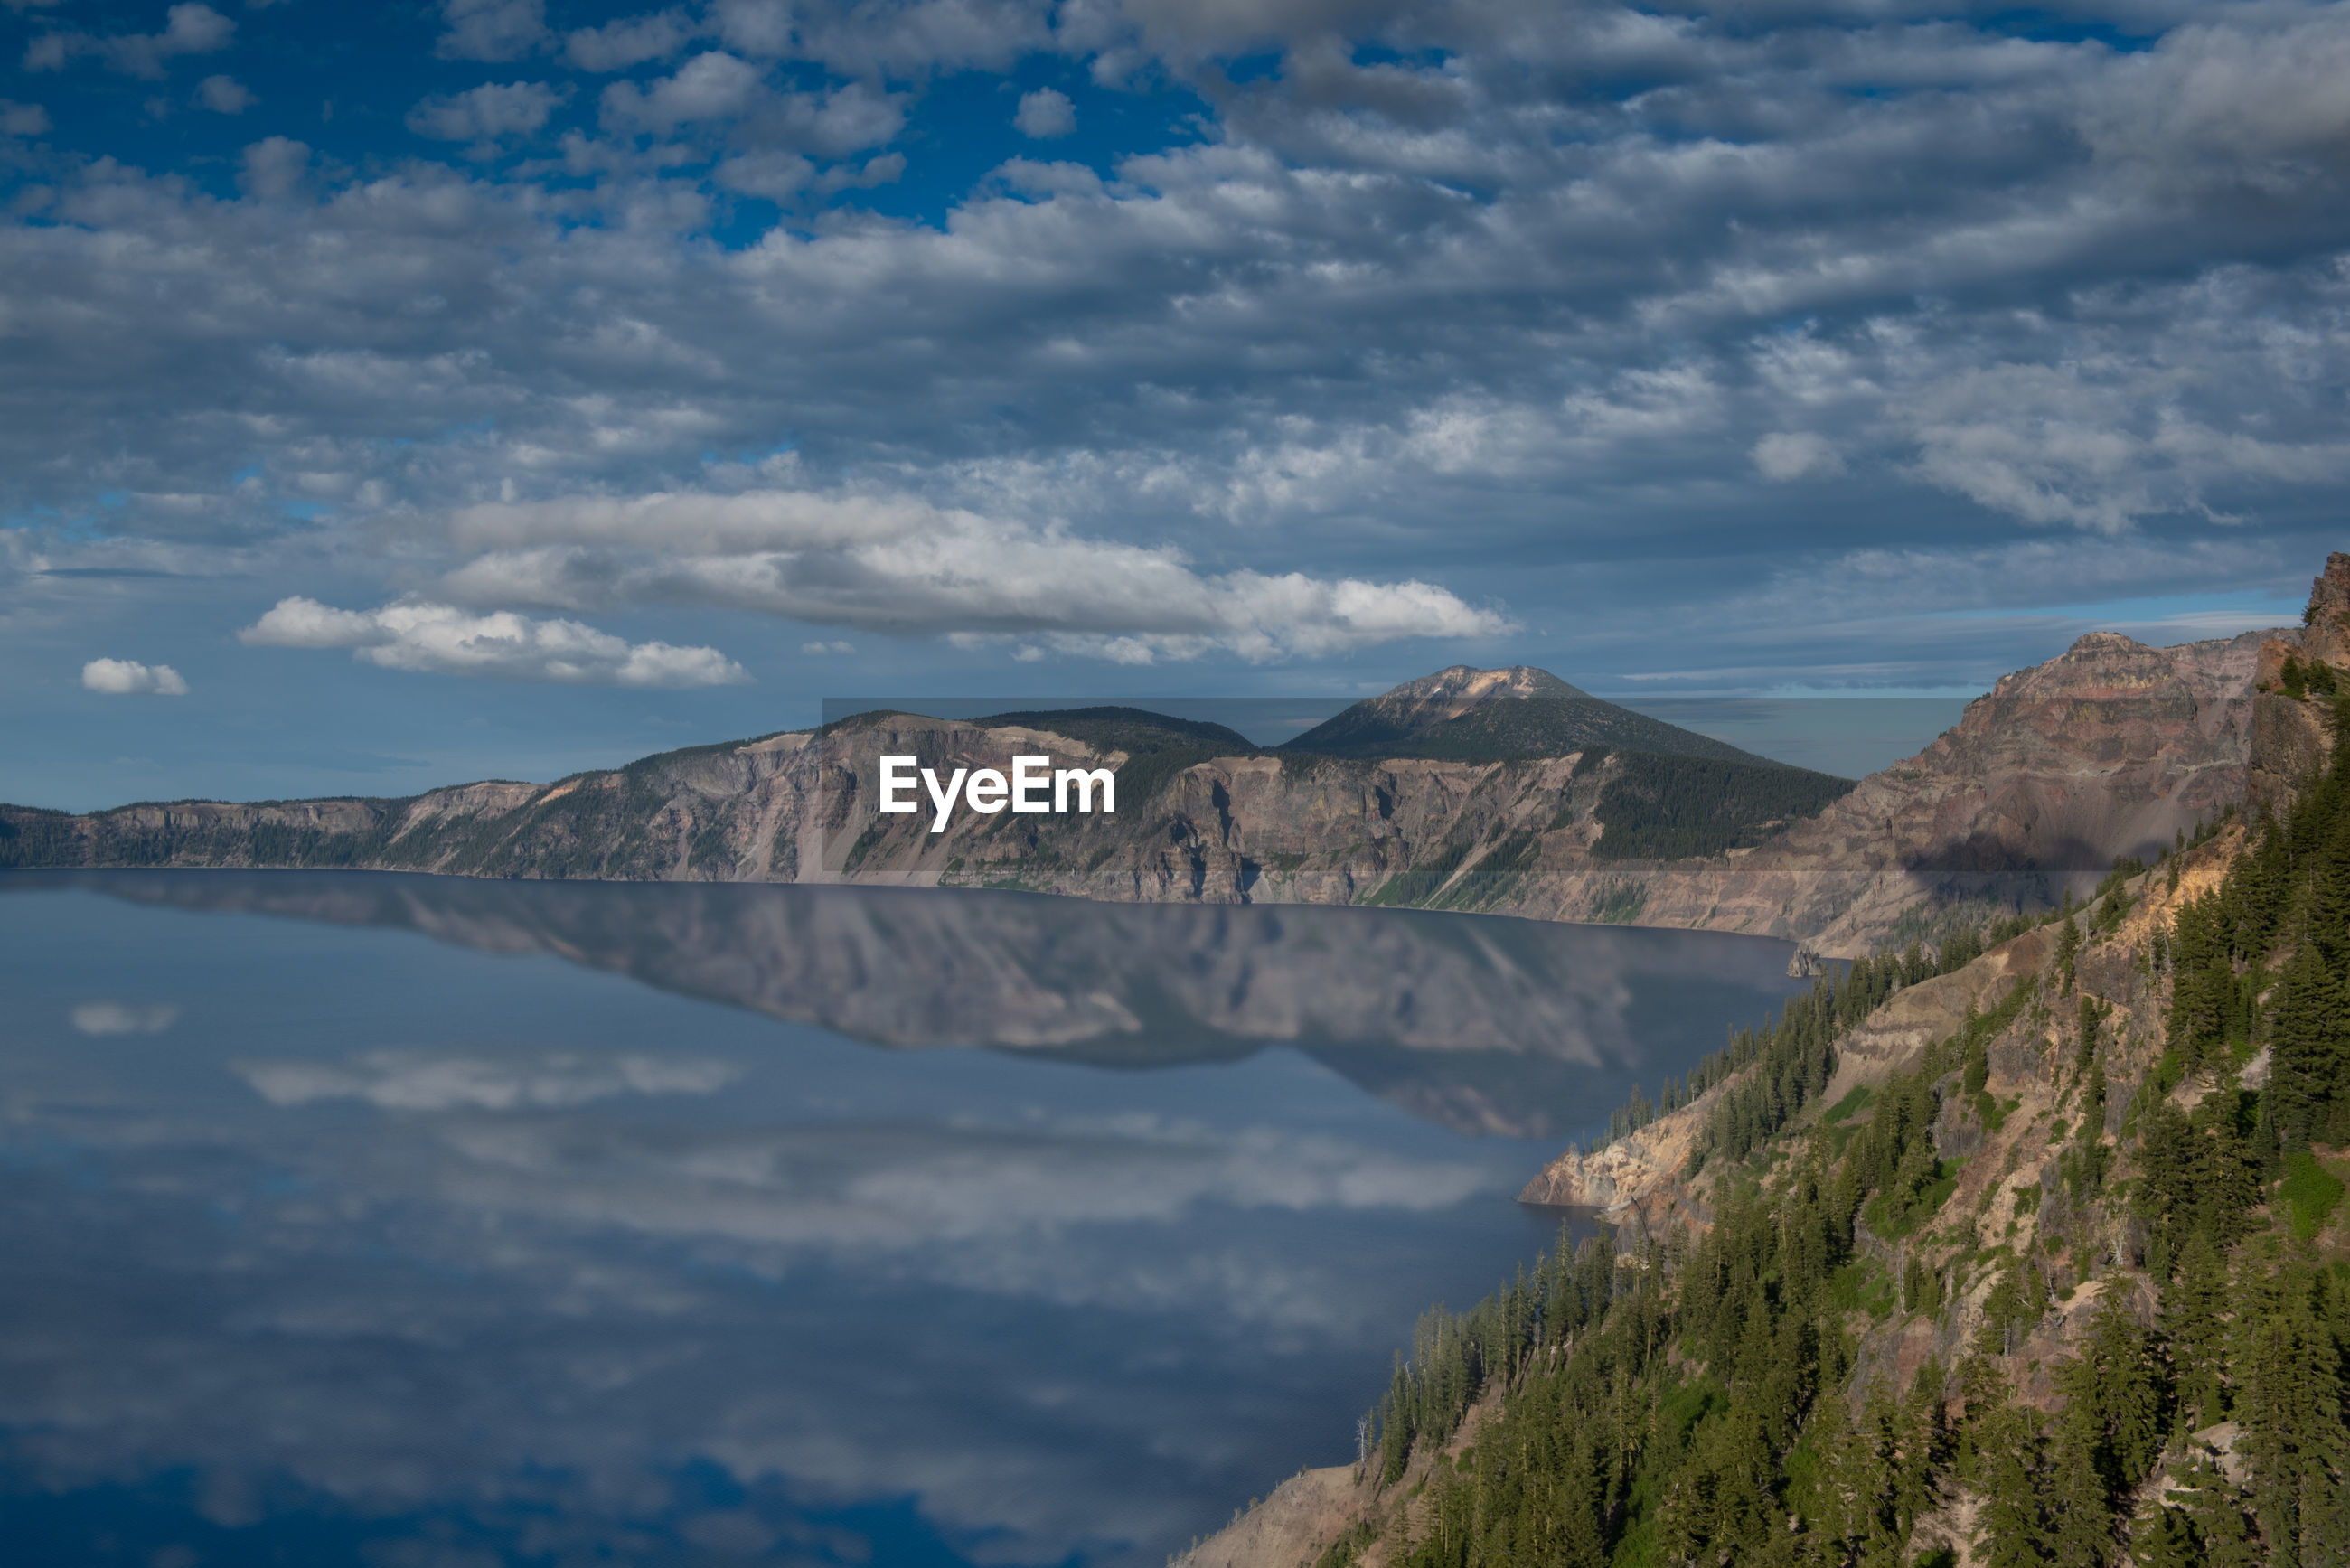 PANORAMIC VIEW OF SEA AND MOUNTAINS AGAINST CLOUDY SKY